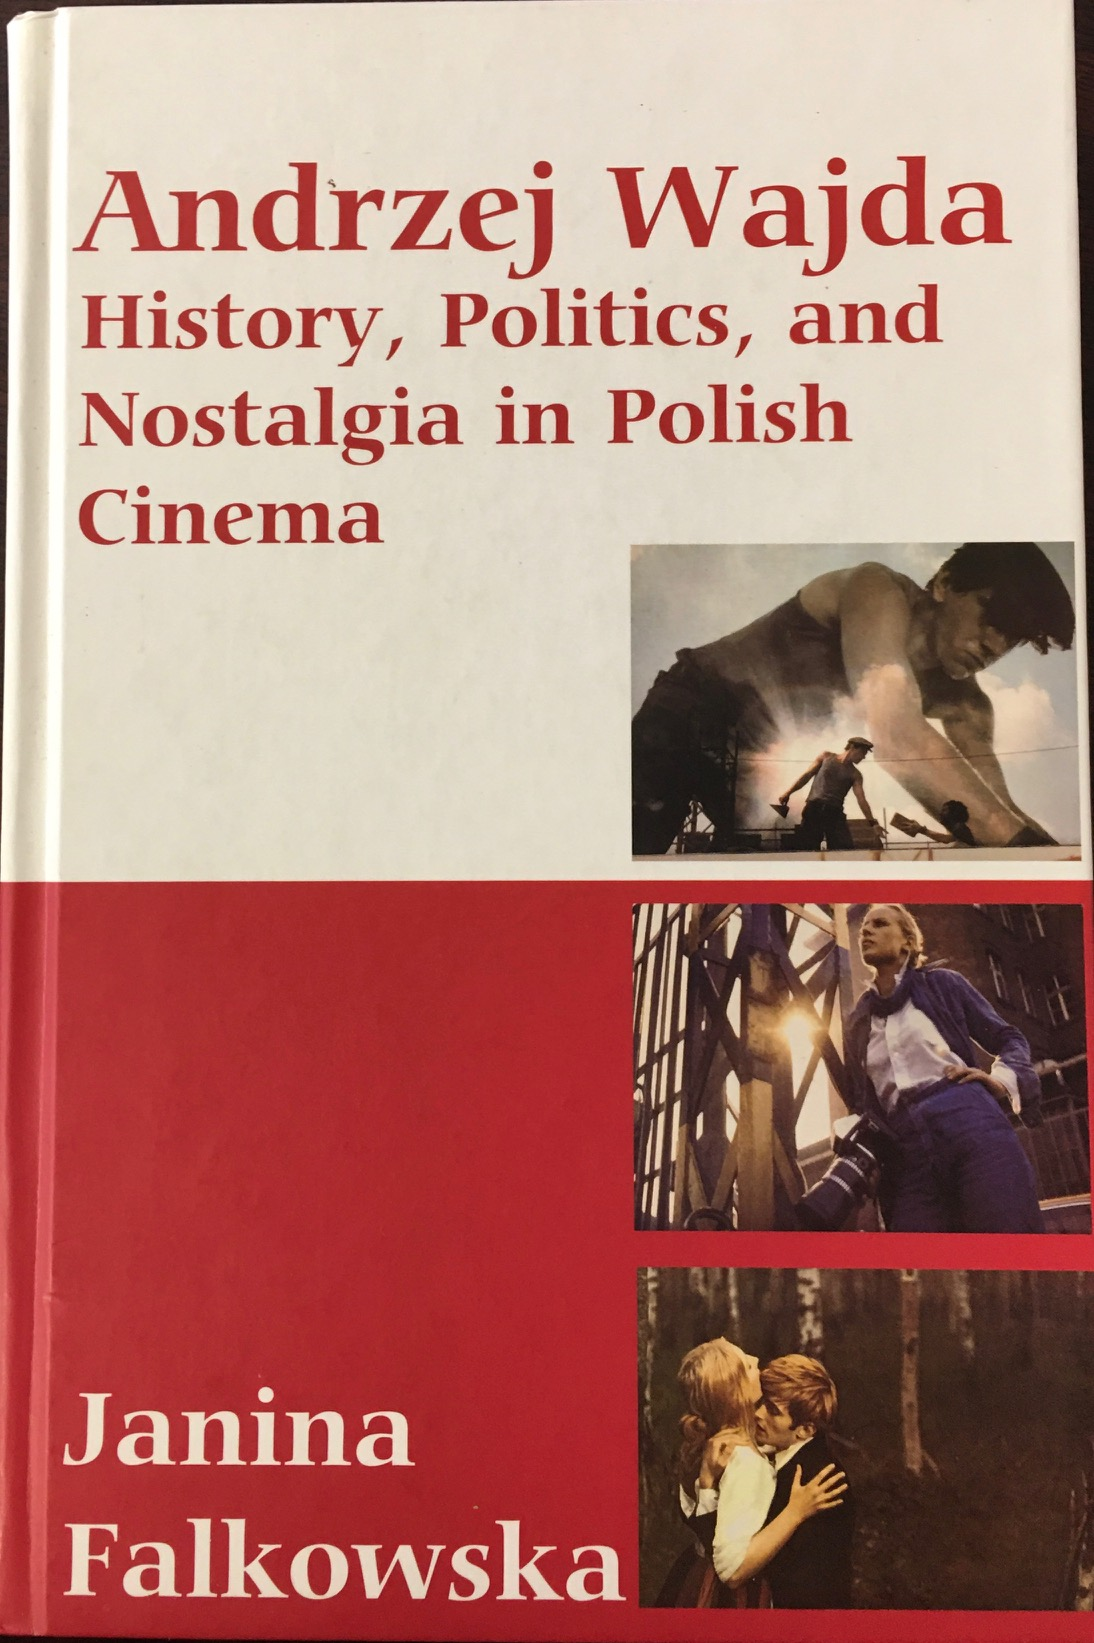 Image for Andrzej Wajda: History, Politics, and Nostalgia in Polish Cinema